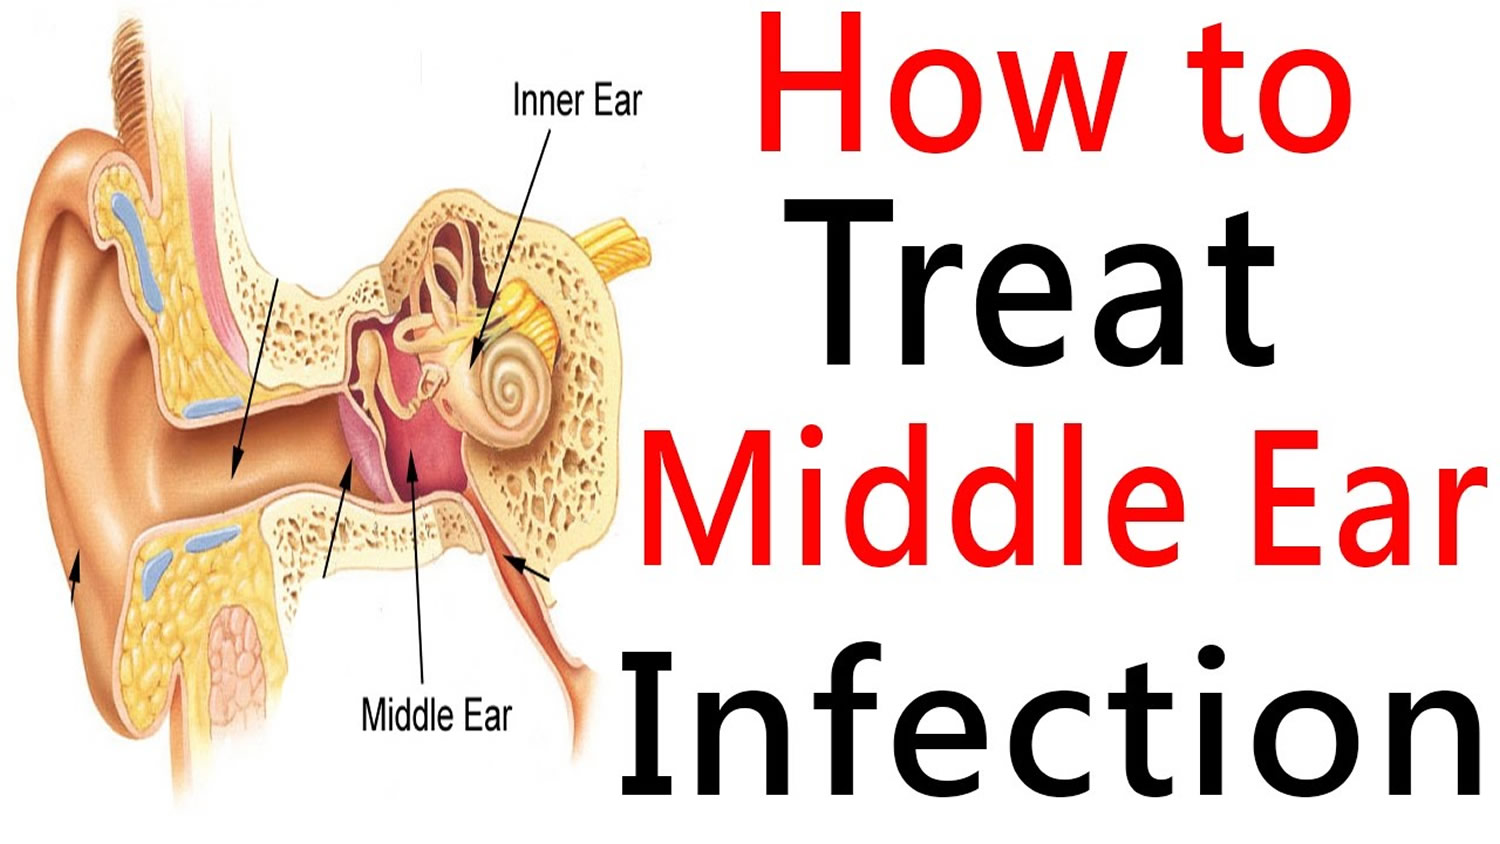 Middle Ear Infection & Middle Ear Effusion - Causes & Treatment